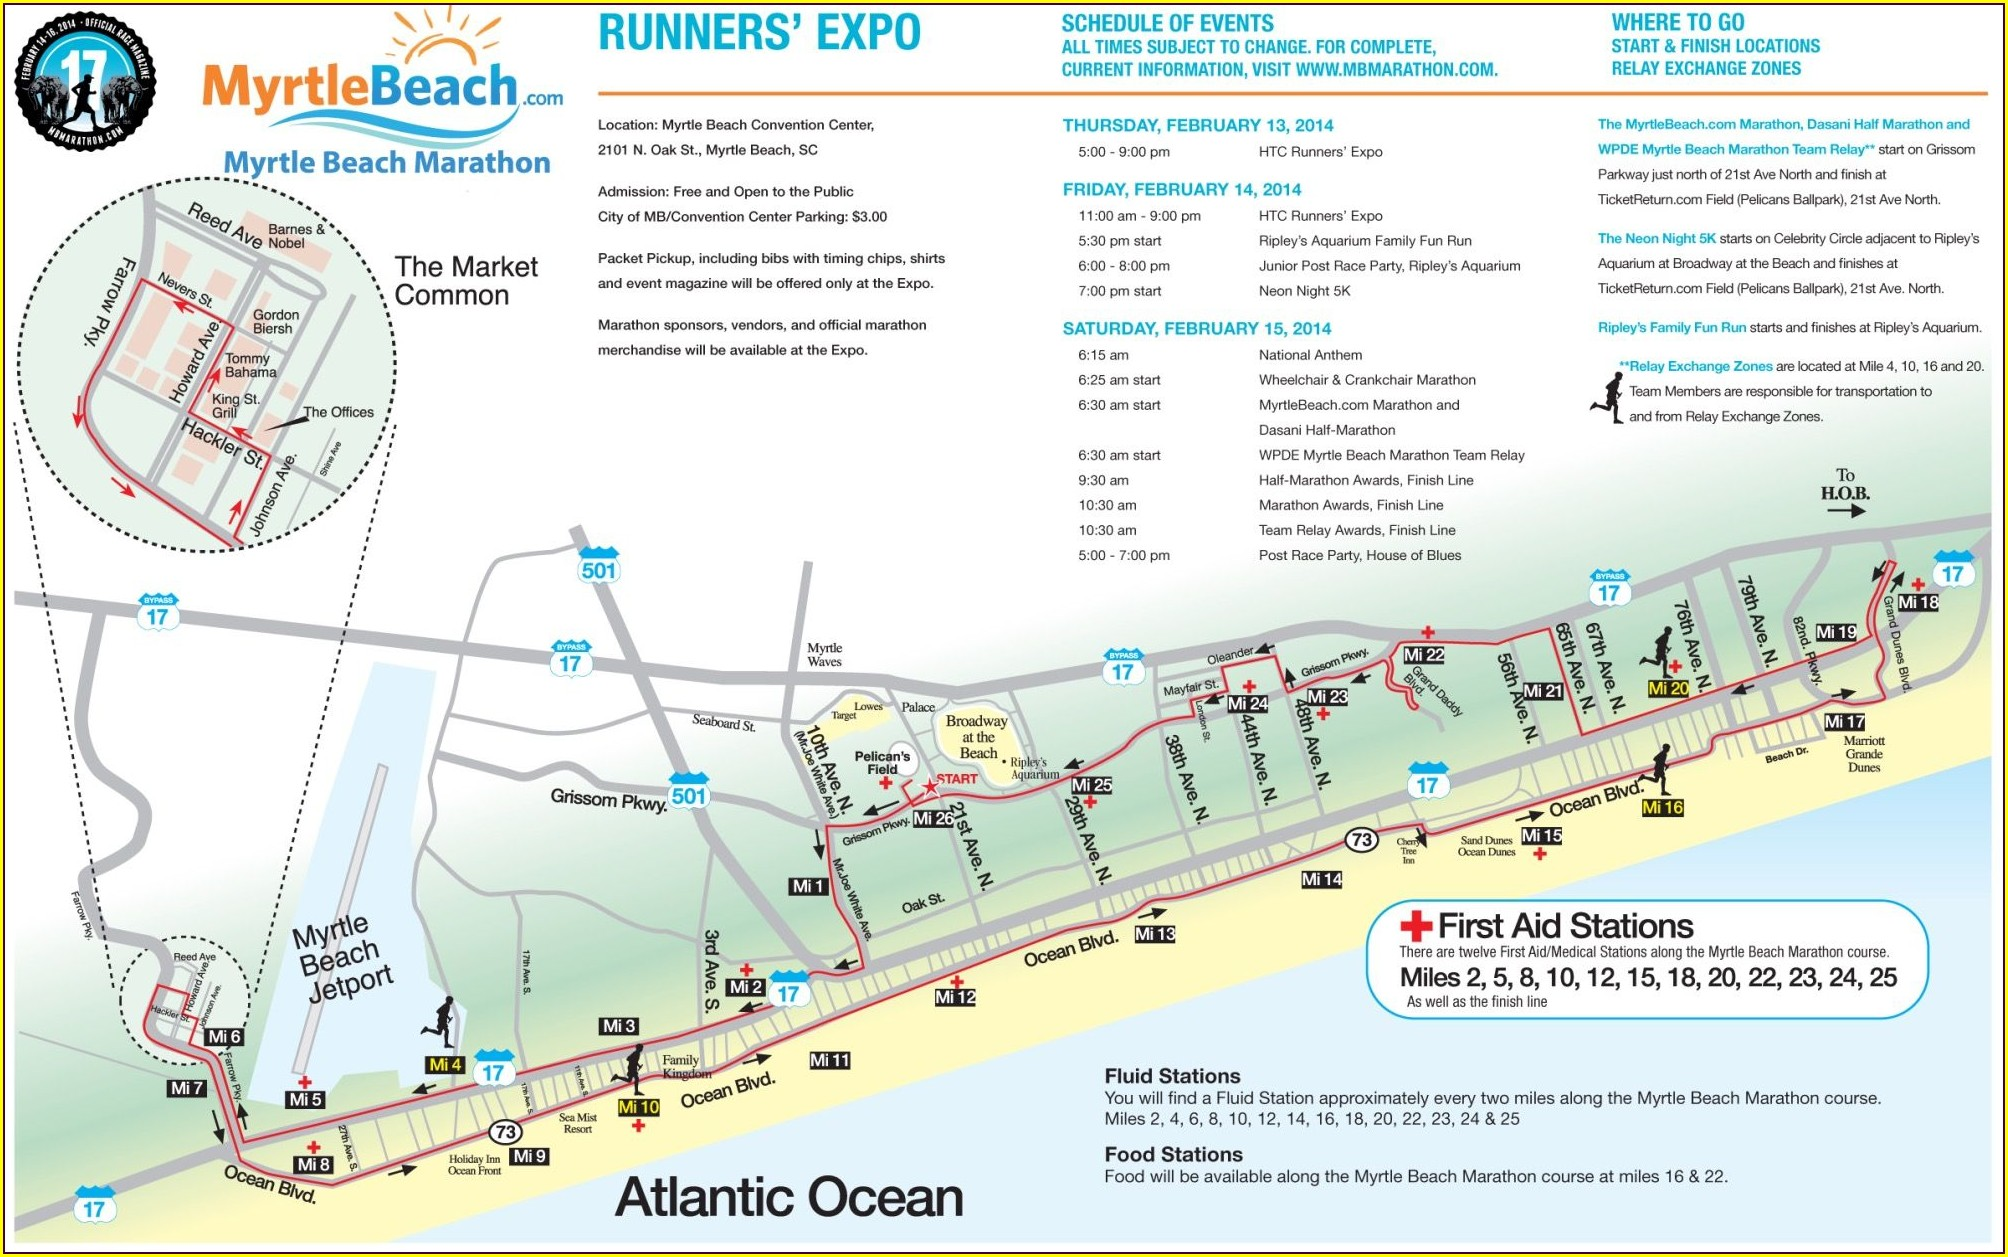 Myrtle Beach Marathon Course Map